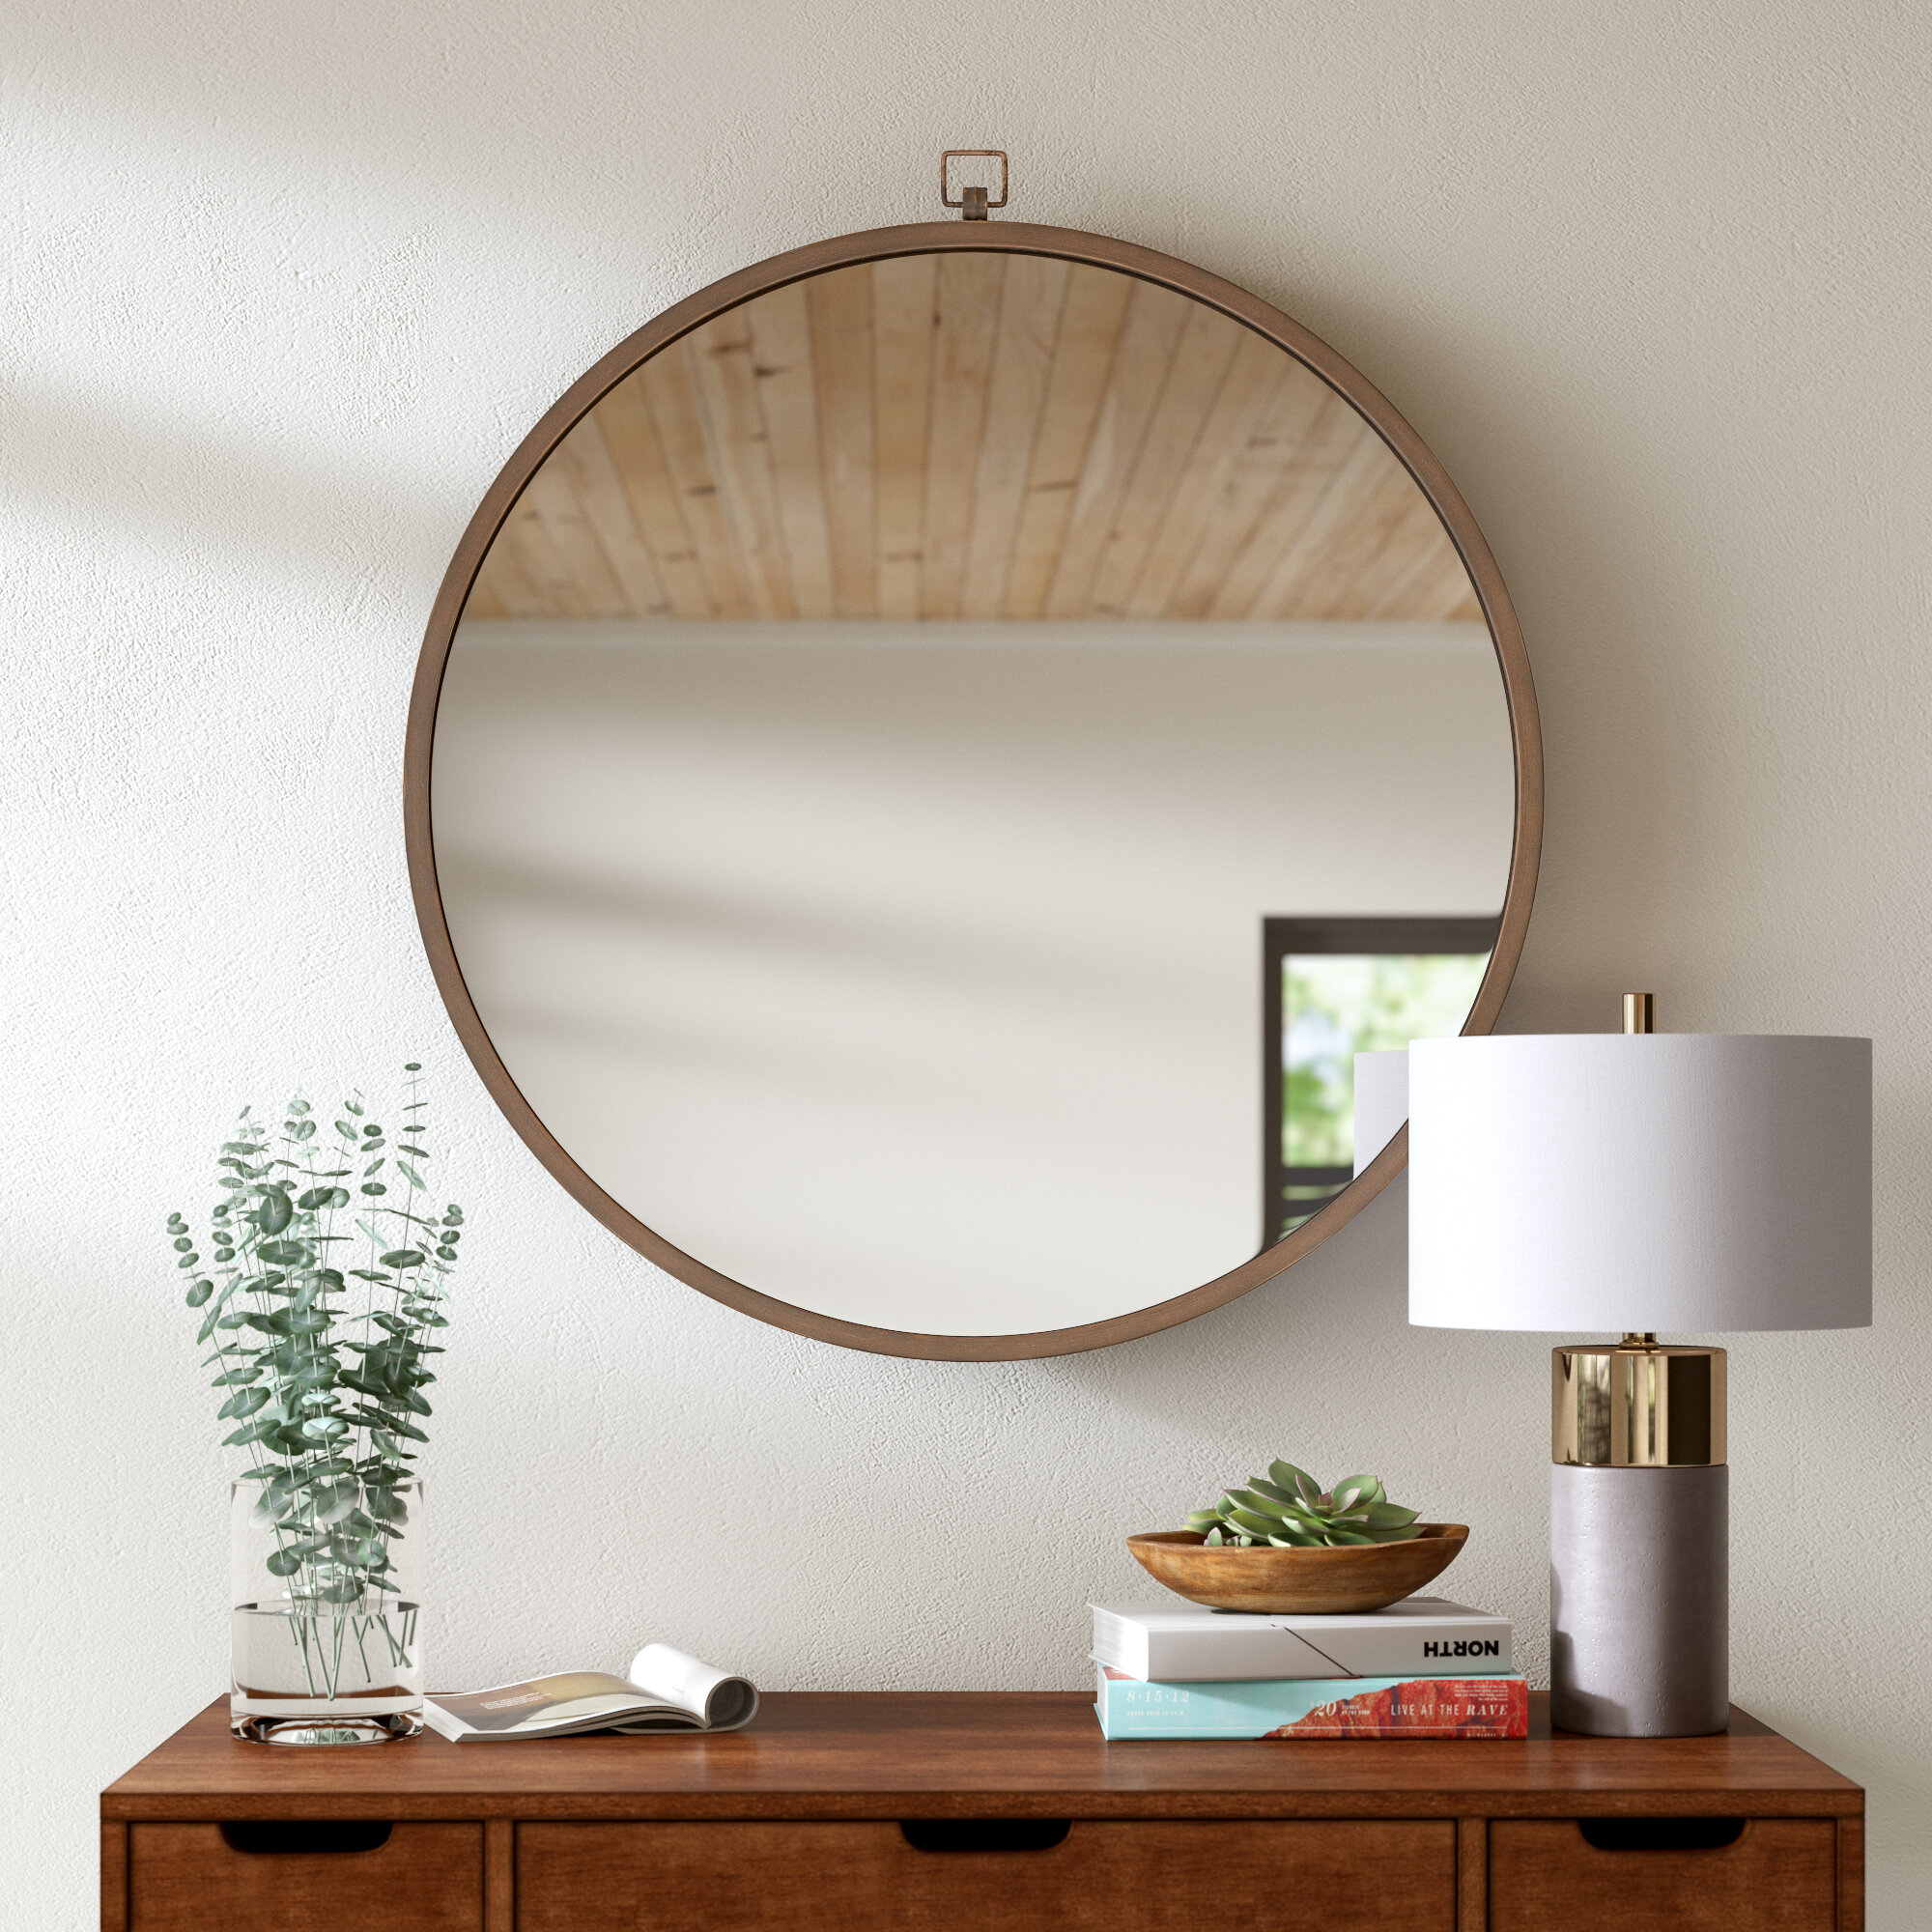 Modern & Contemporary Framed Bathroom Mirrors | Allmodern Intended For Landover Rustic Distressed Bathroom/vanity Mirrors (View 21 of 30)